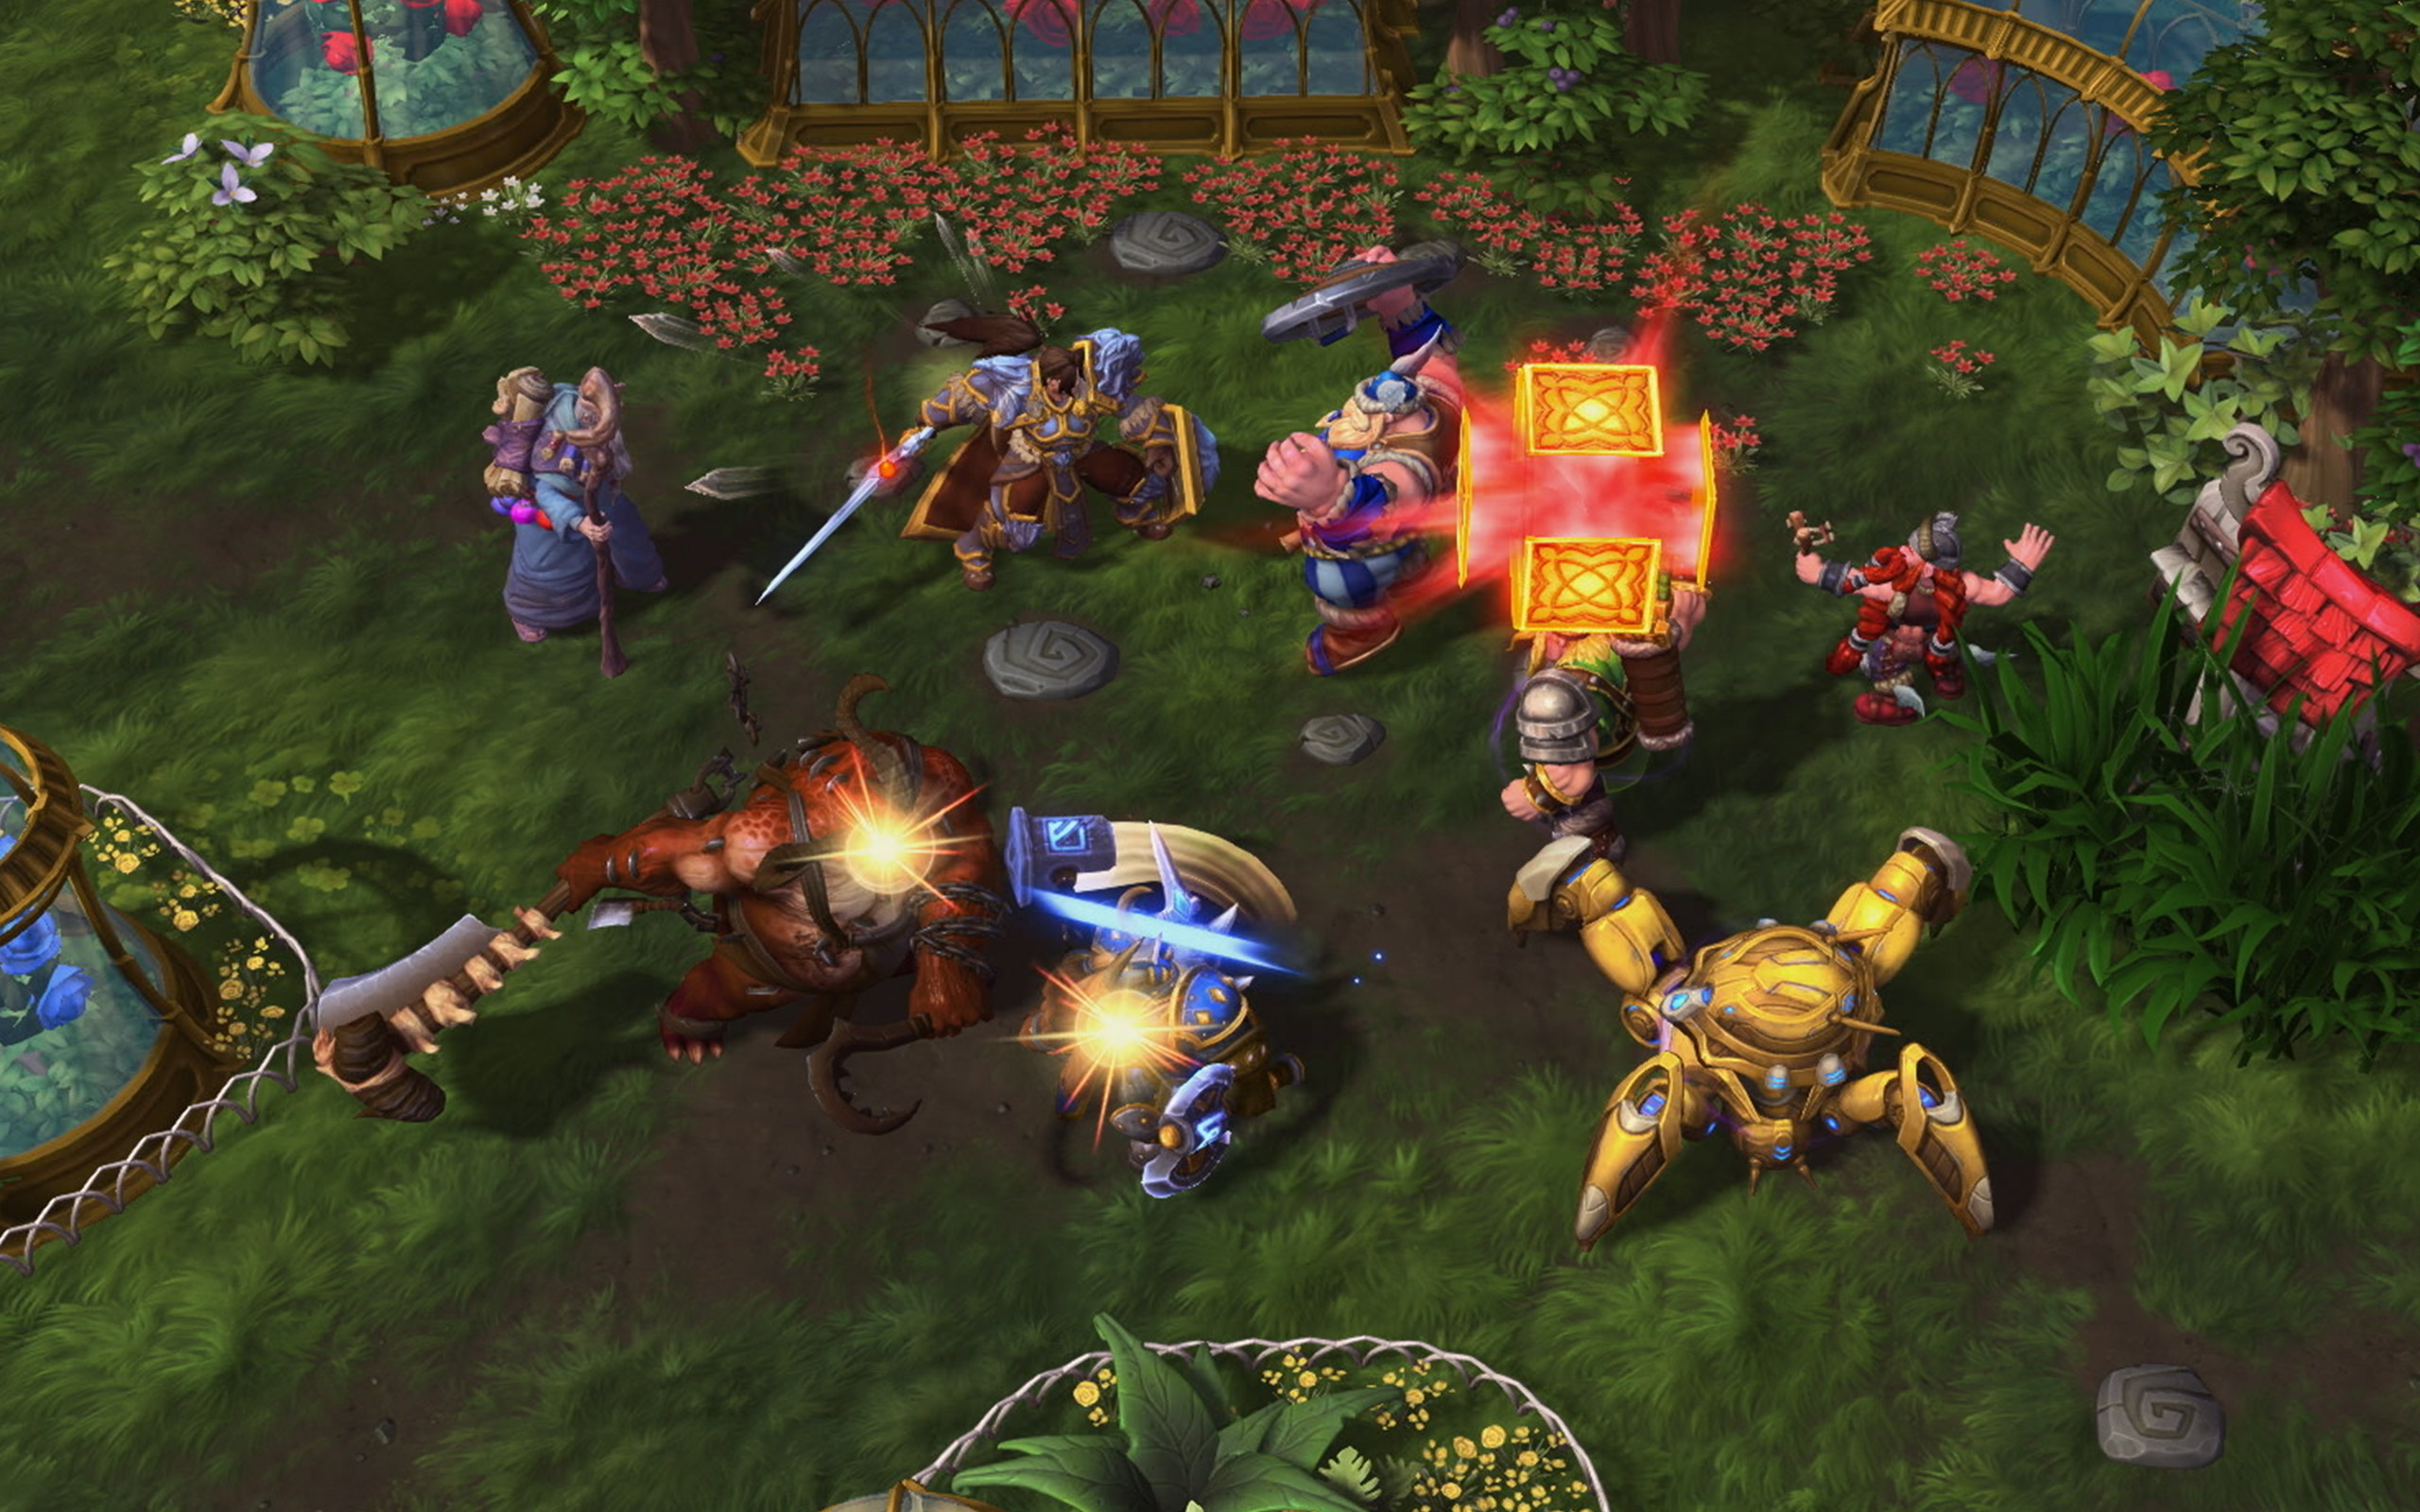 Diablo S Deckard Cain Will Be Playable In Heroes Of The Storm Polygon Logs just doesn't have the information to match. diablo s deckard cain will be playable